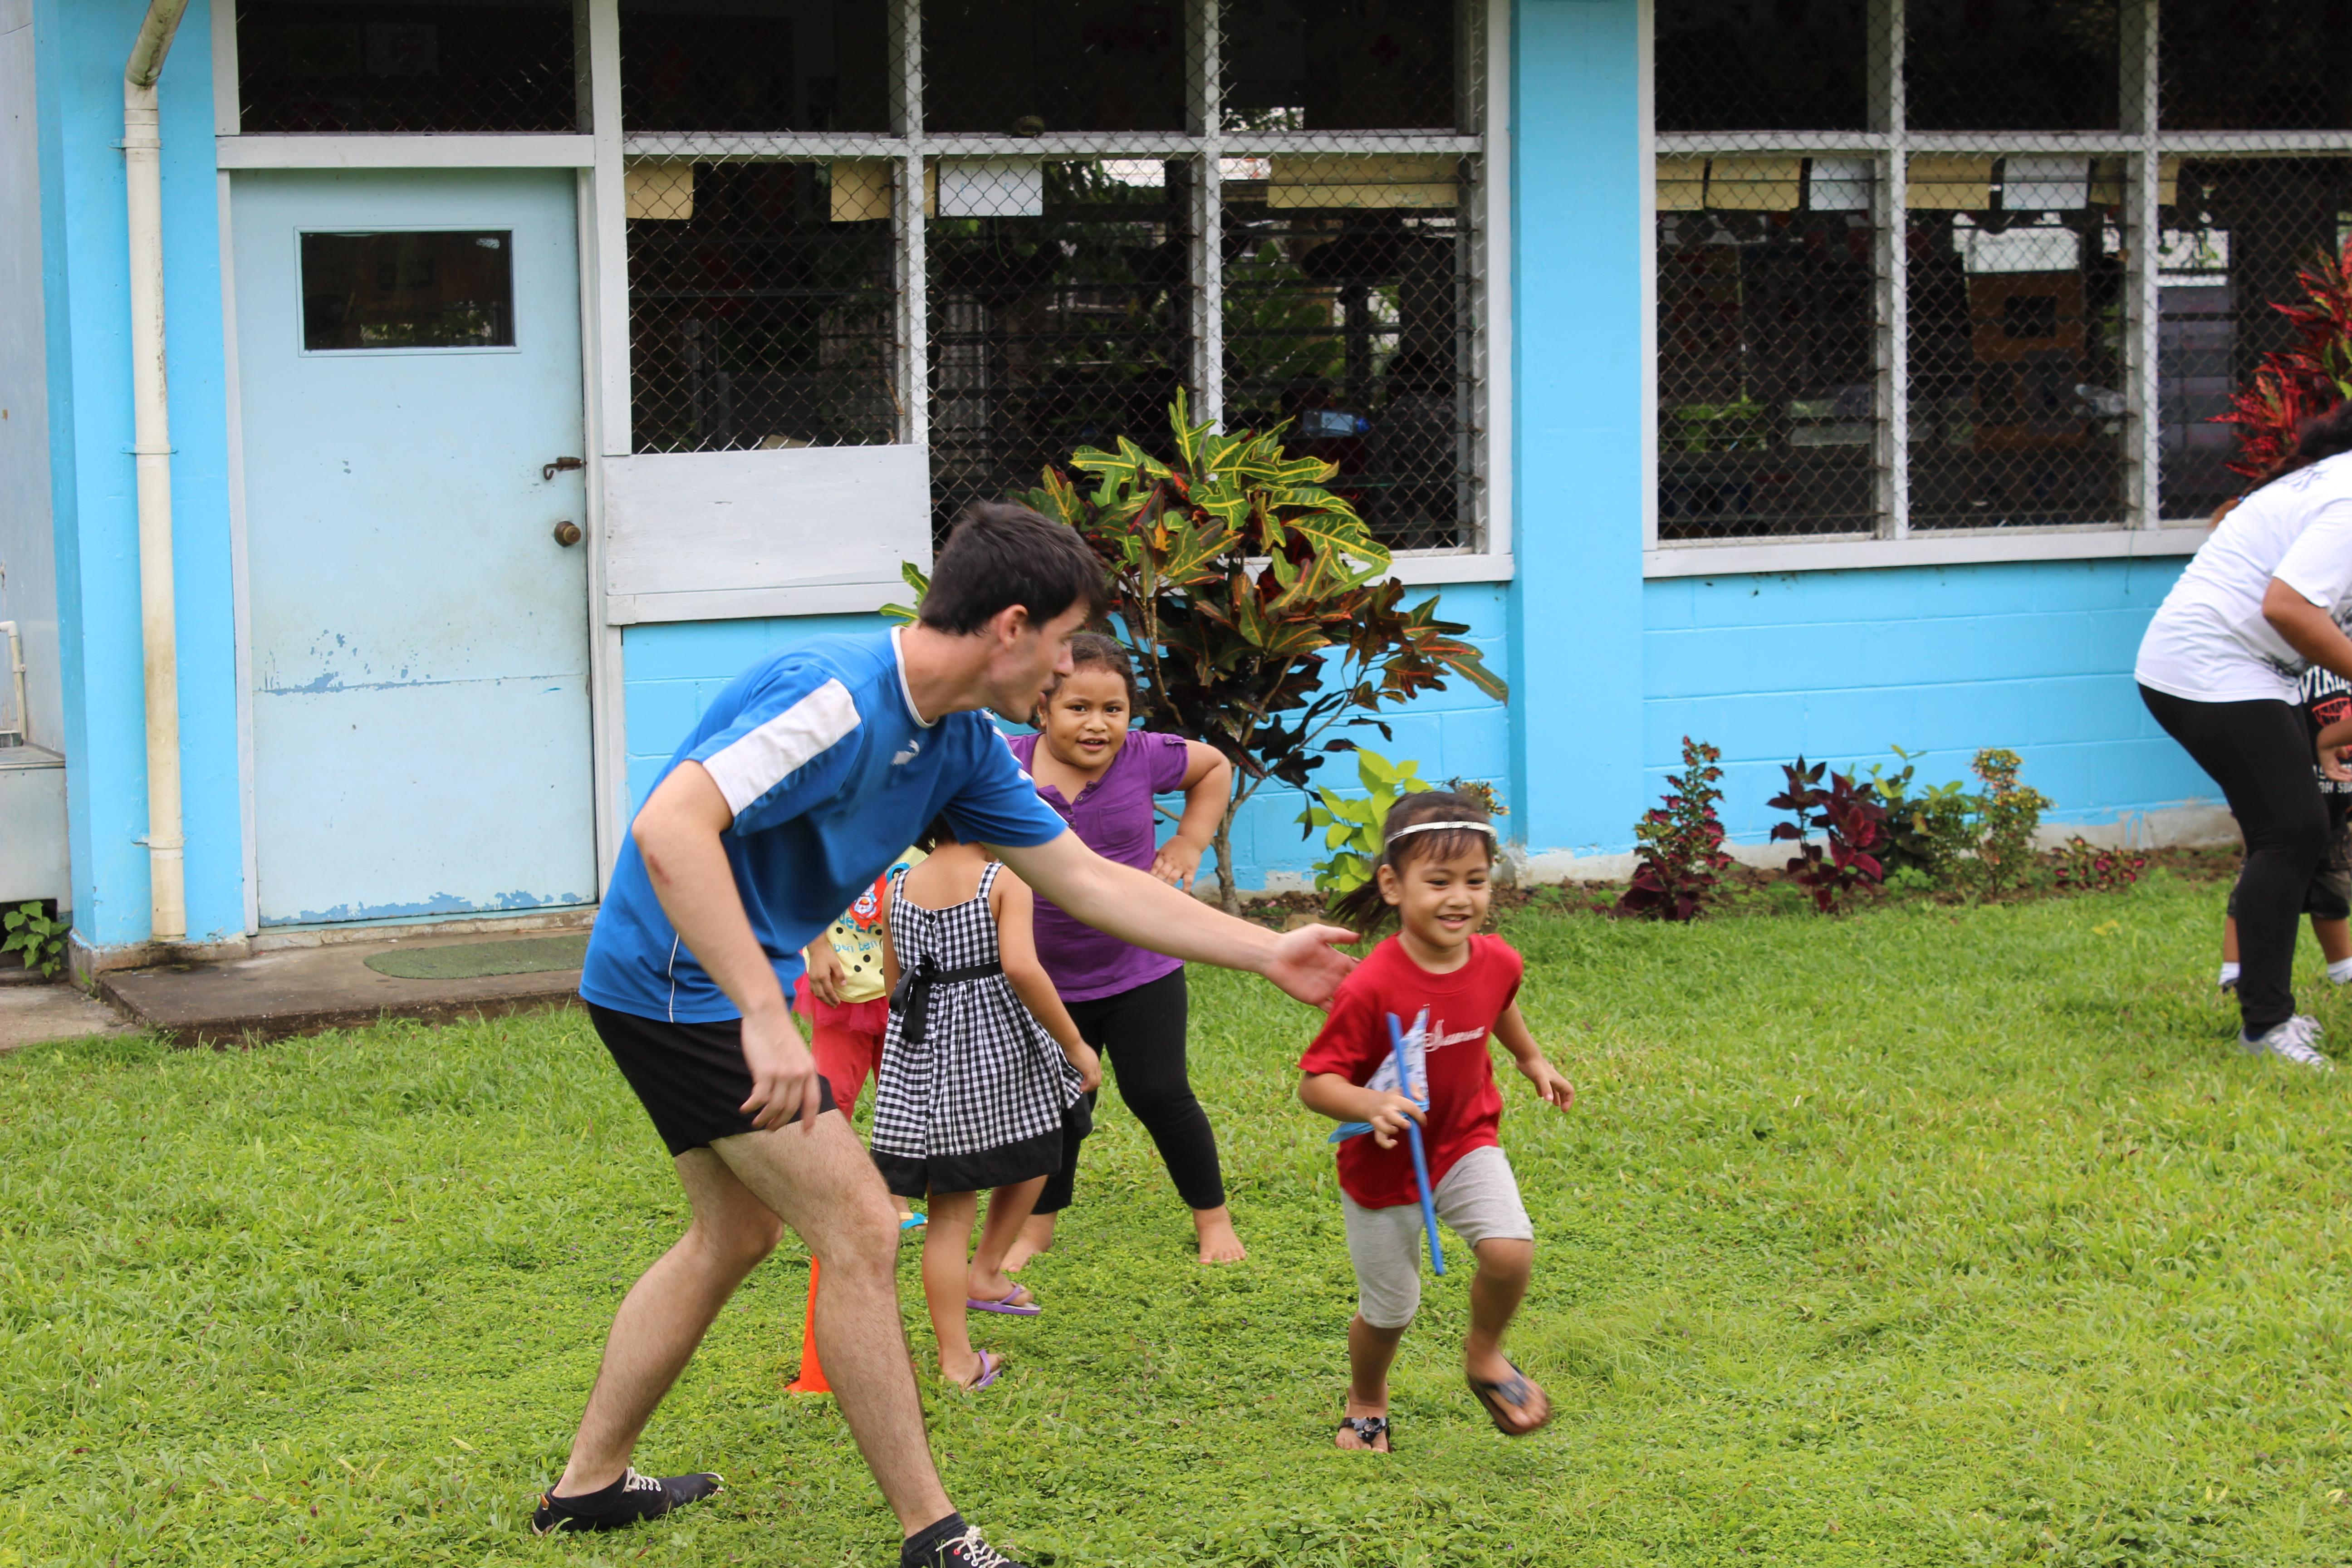 A student facilitates physical exercises as part of his volunteer rugby coaching in Samoa.